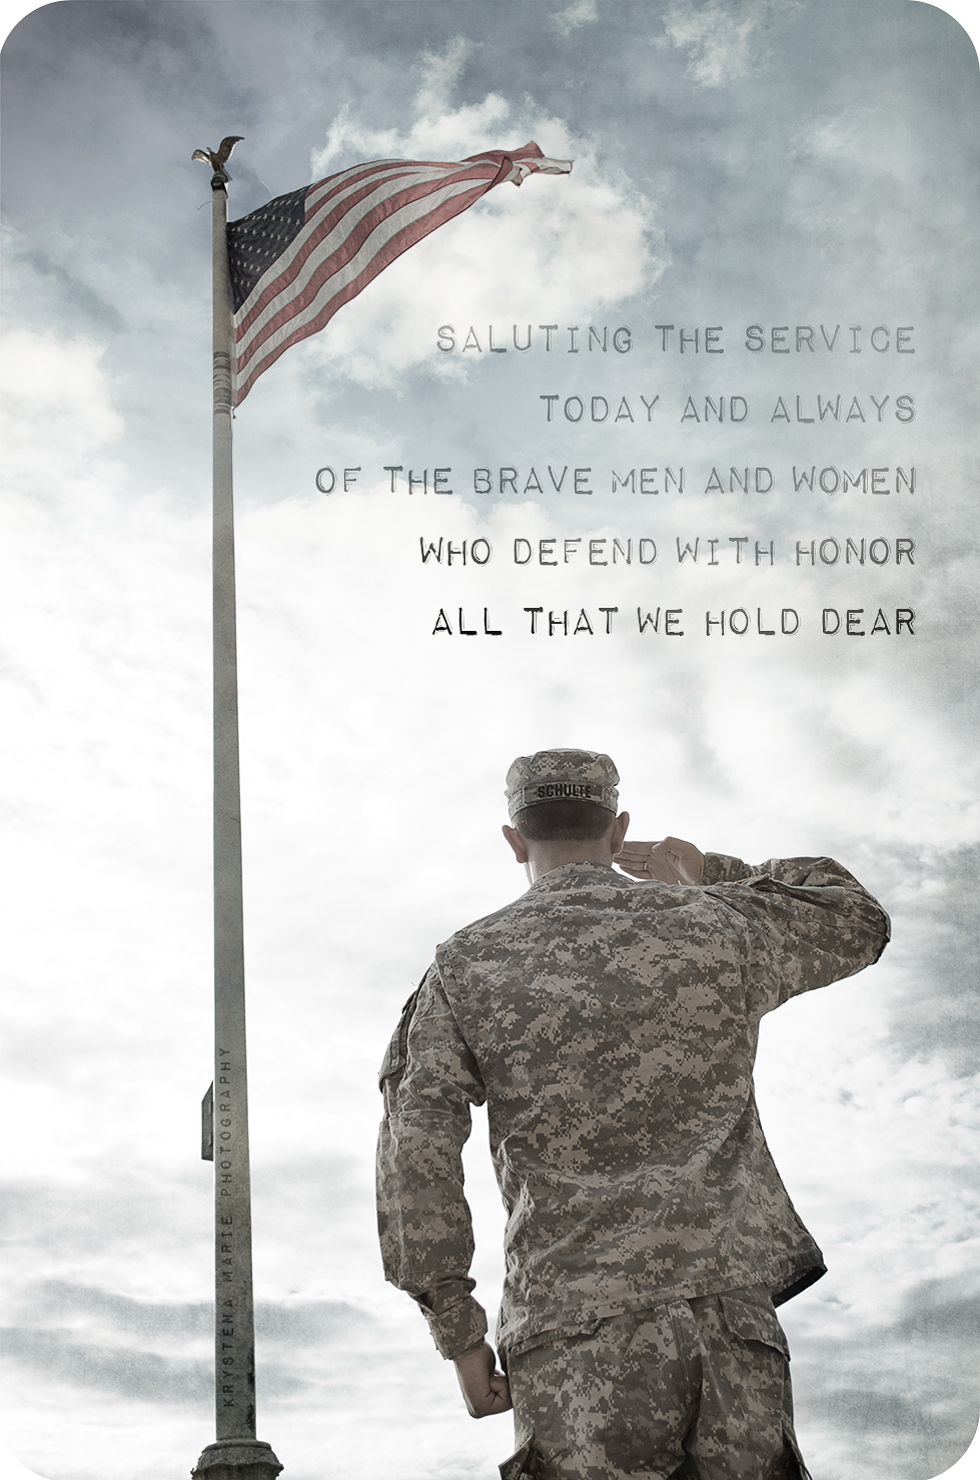 Saluting the service today and always of the brave men and women who defend with honor all we hold dear